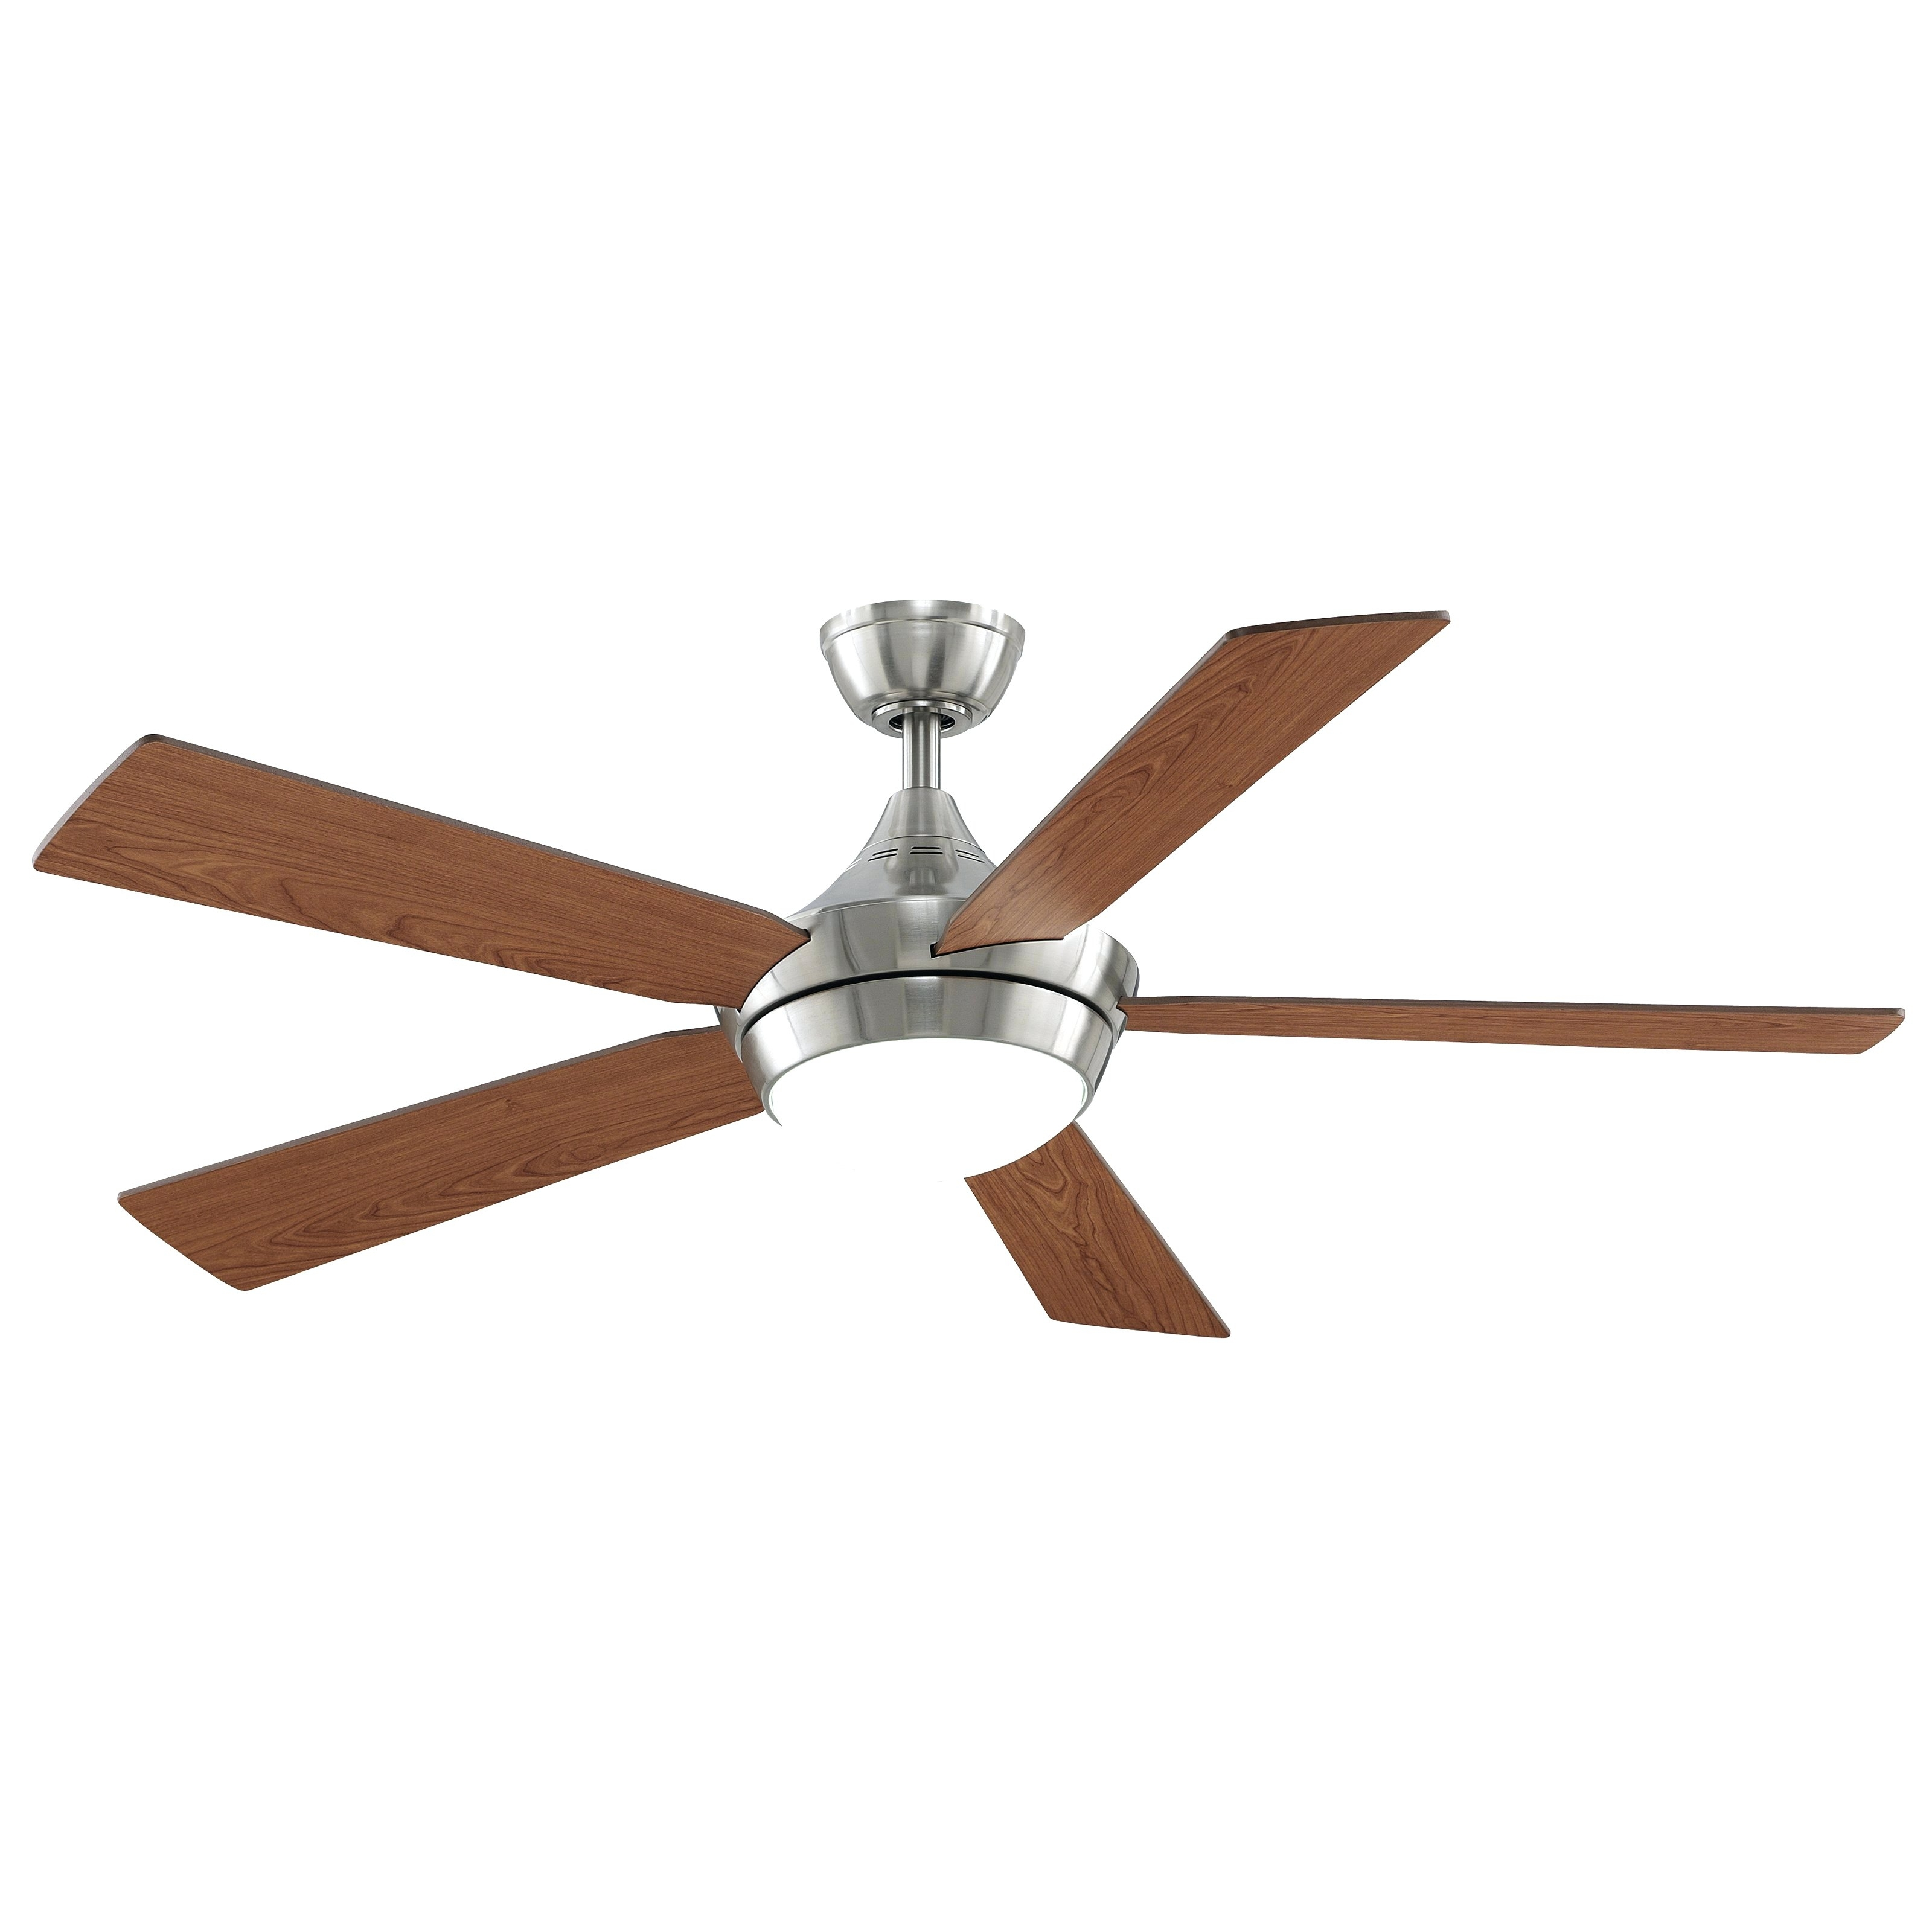 Outdoor Ceiling Fans At Bunnings For Well Known Mercator Ceiling Fans Bunnings • Ceiling Fans Ideas (View 14 of 20)